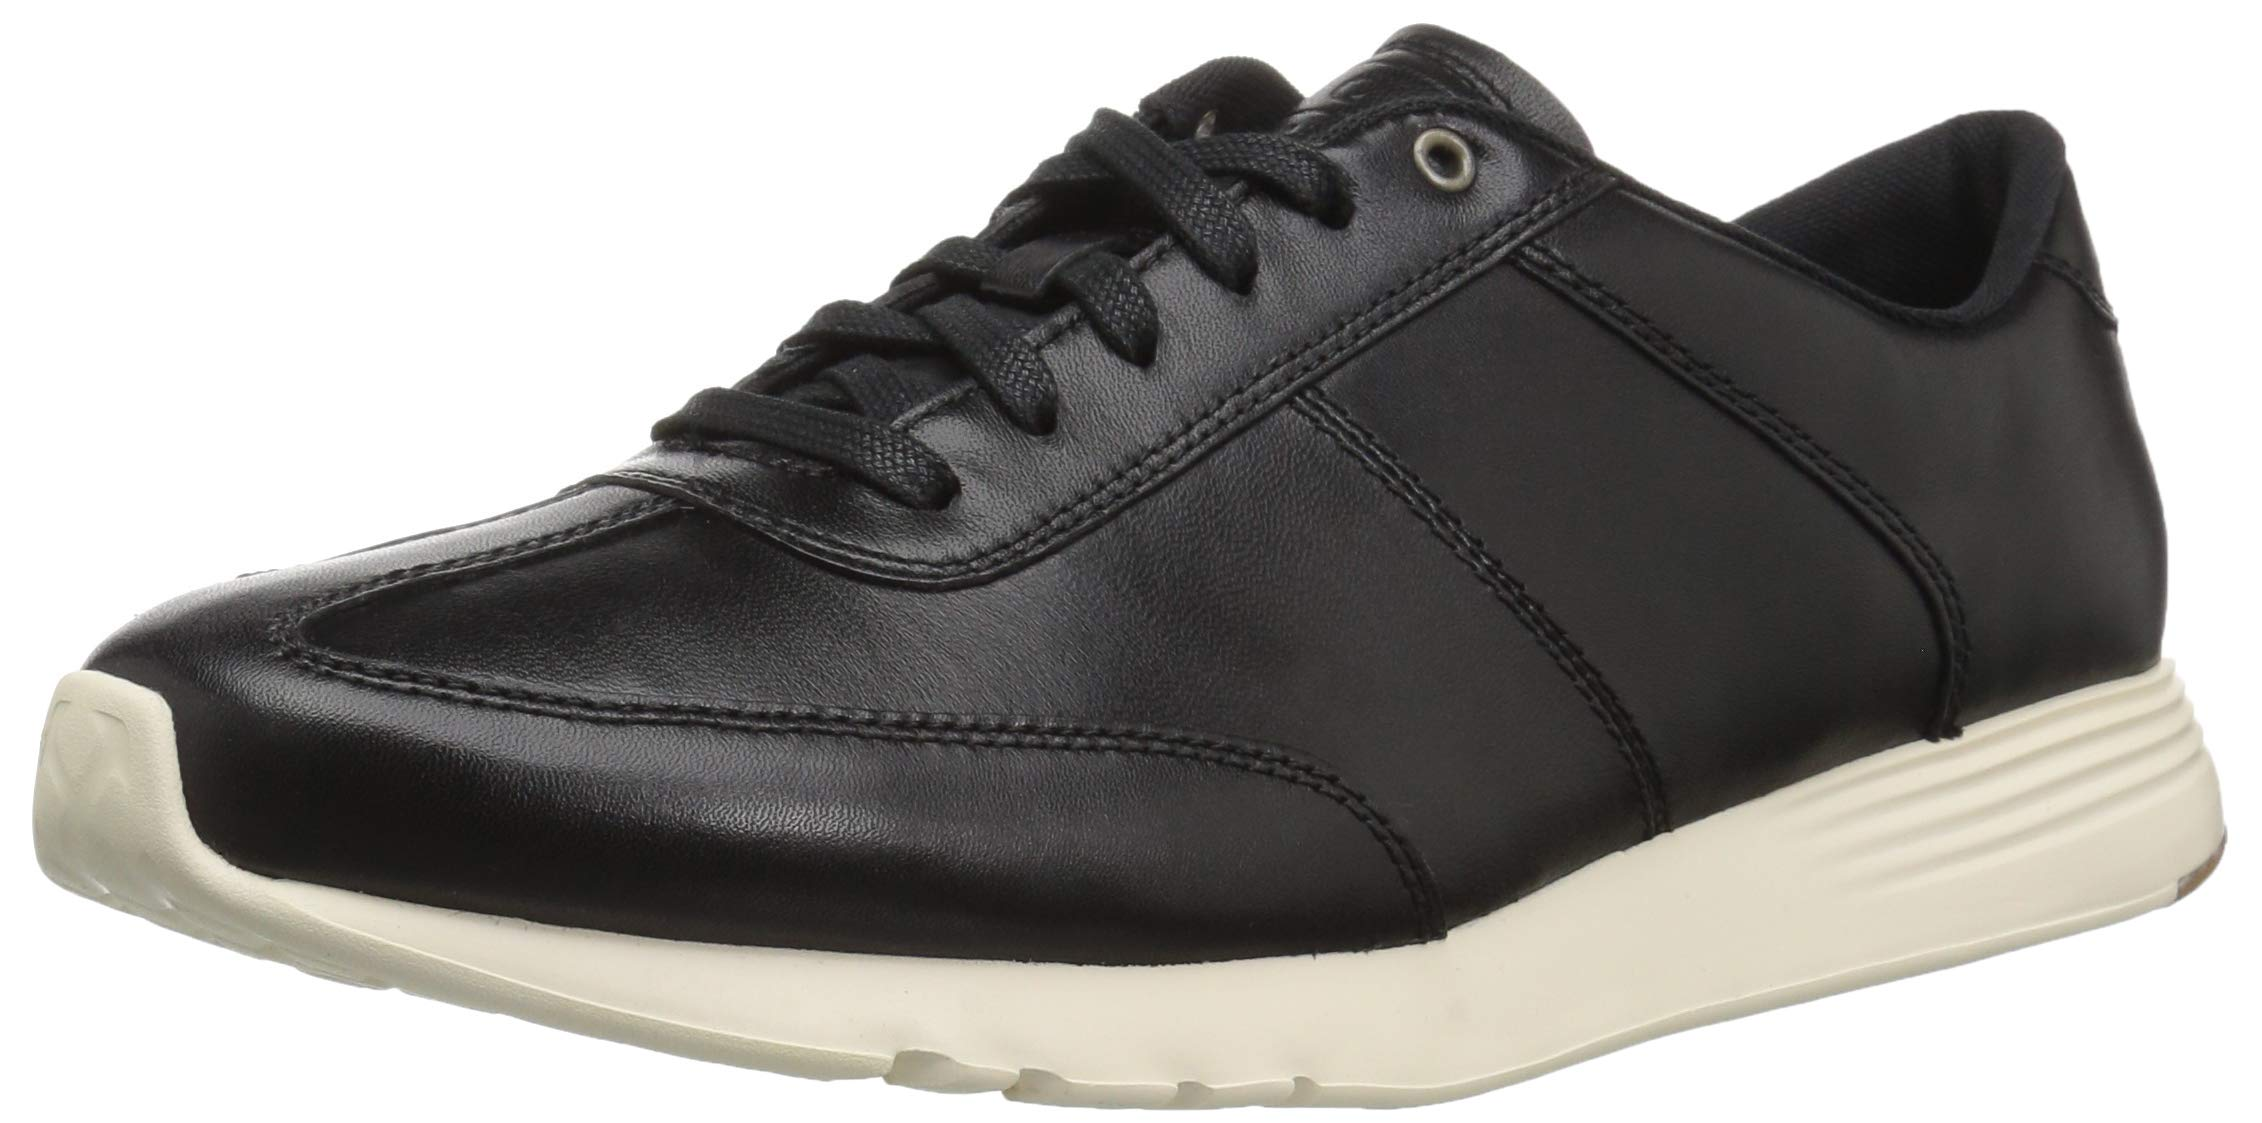 4d4c05d30091e Galleon - Cole Haan Men's Grand Crosscourt Runner Sneaker, Black Burnished  Leather, 11 M US